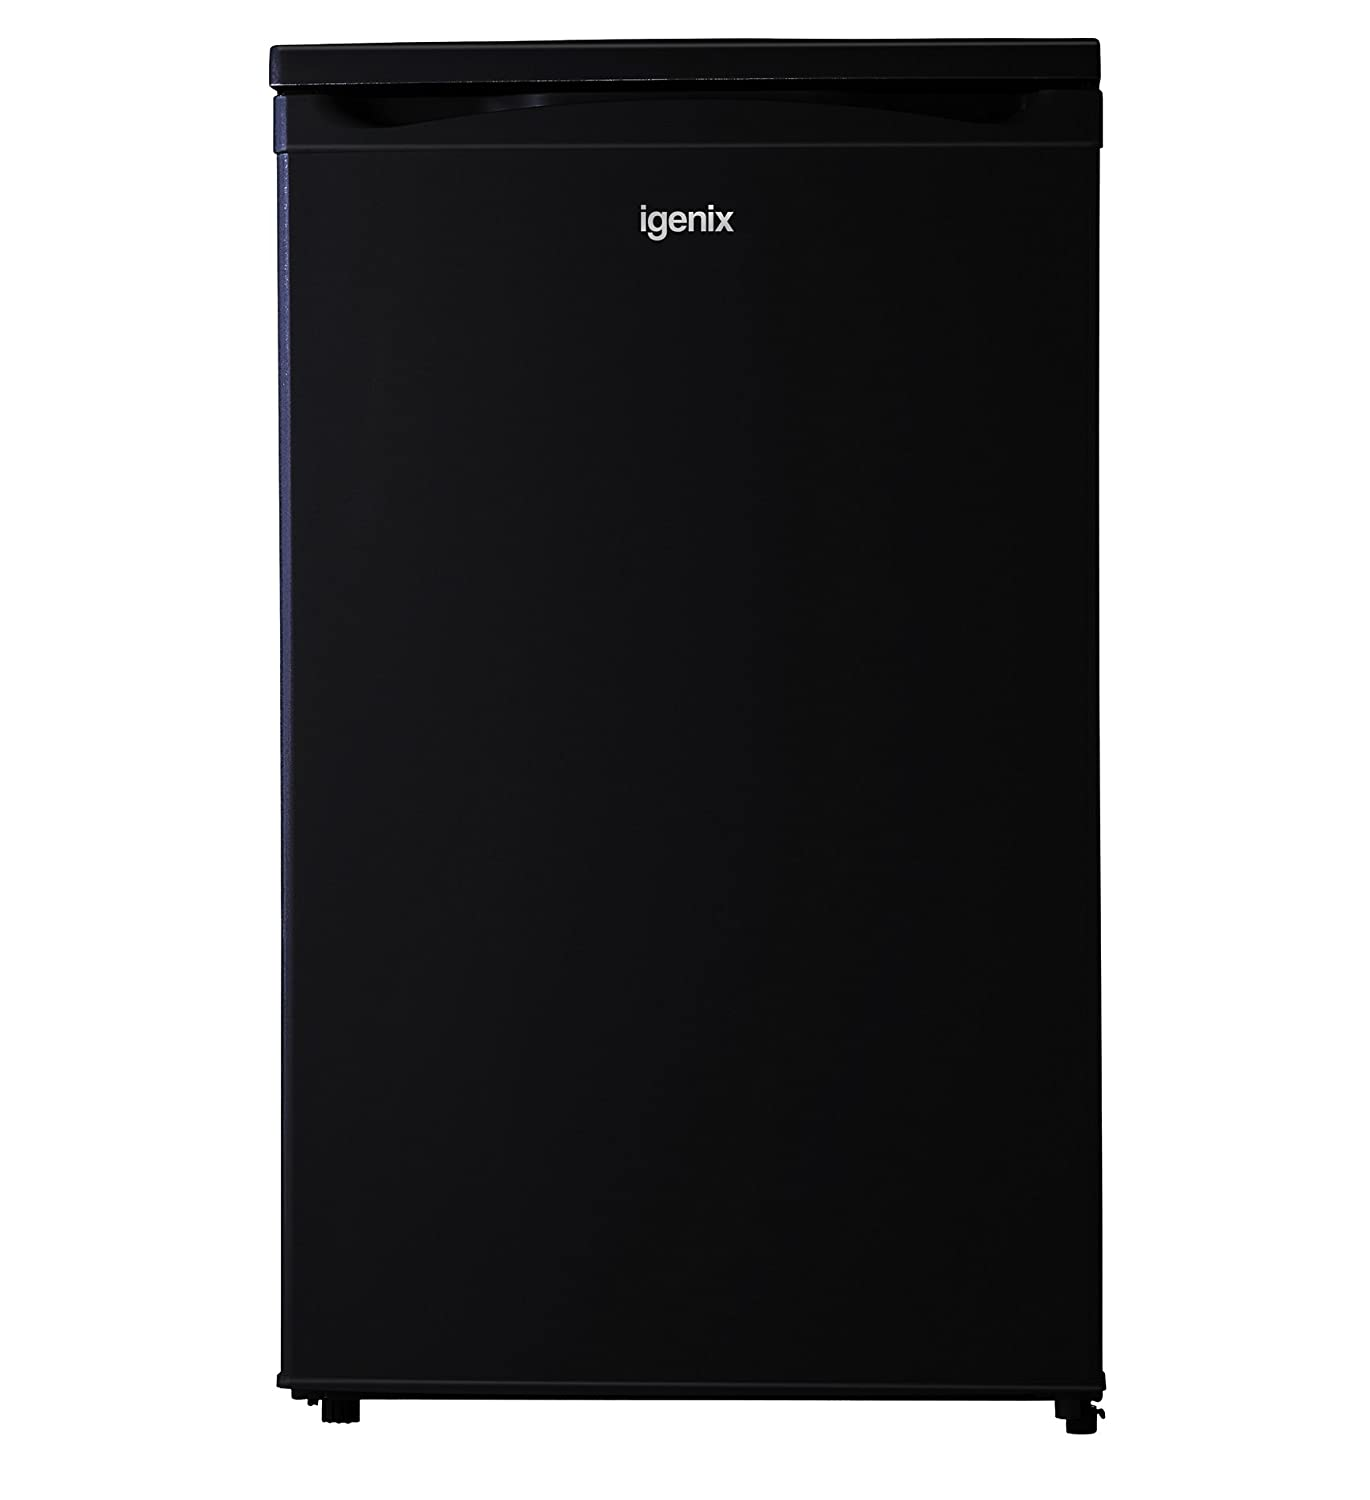 Igenix IG350R Wide Freestanding Under Counter Fridge with Ice Box, 1 Adjustable Glass Shelf and Salad Drawer with Glass Cover, Reversible Door, 100 Litre Capacity, 50 cm, White [Energy Class A+]